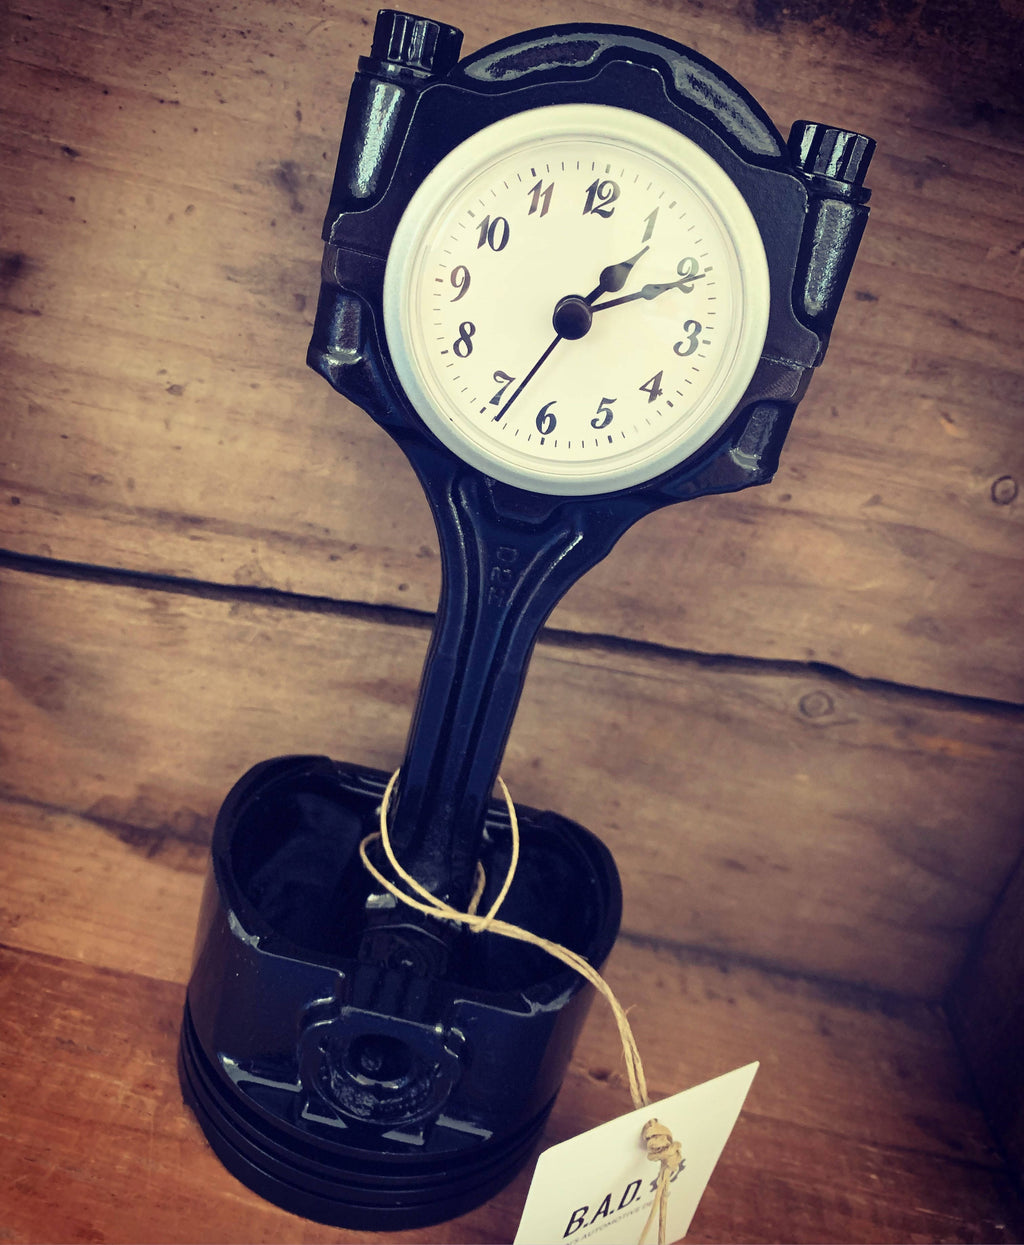 Piston Clock - Cave Market Artisan Home Goods and Furniture